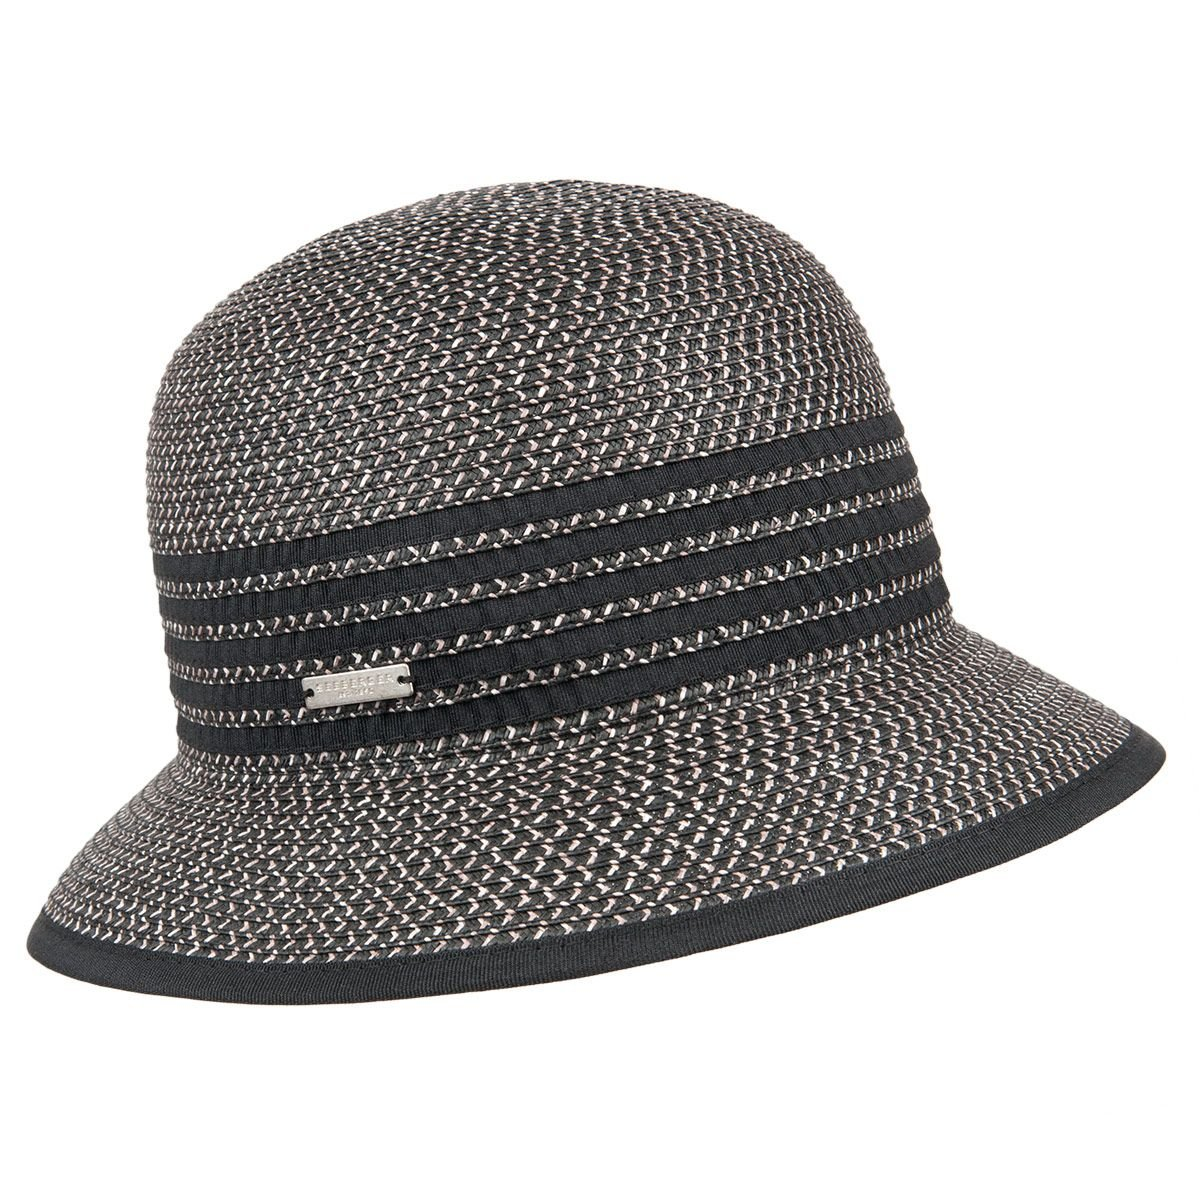 3d47e314128 SEEBERGER hat for women light and aestive